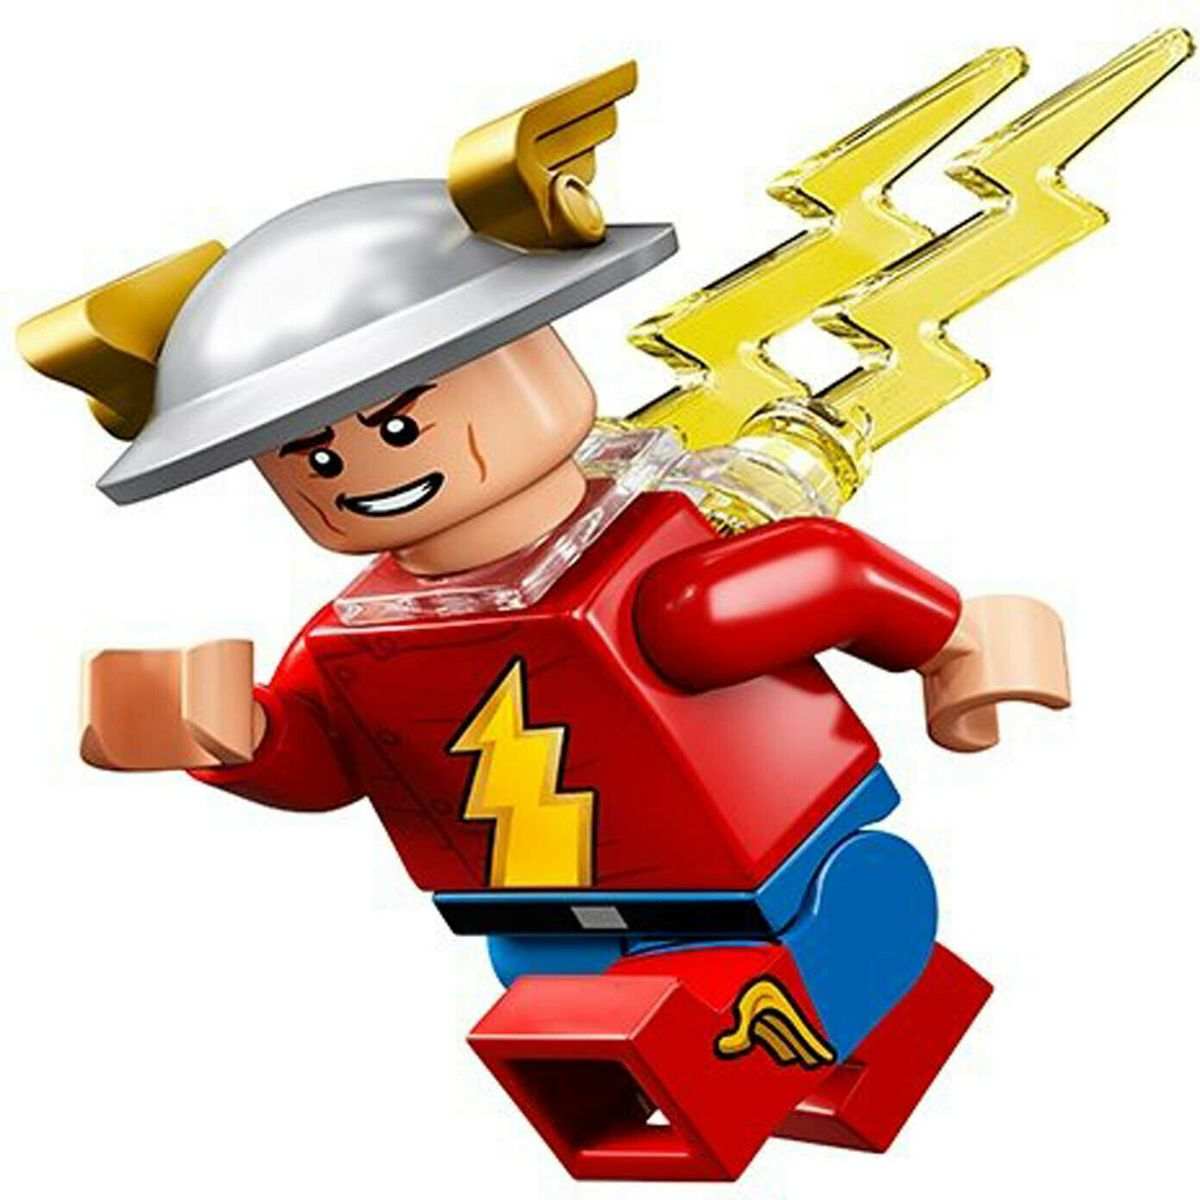 LEGO® Minifigures Series DC Super heroes - The Flash 15/16 - 71026